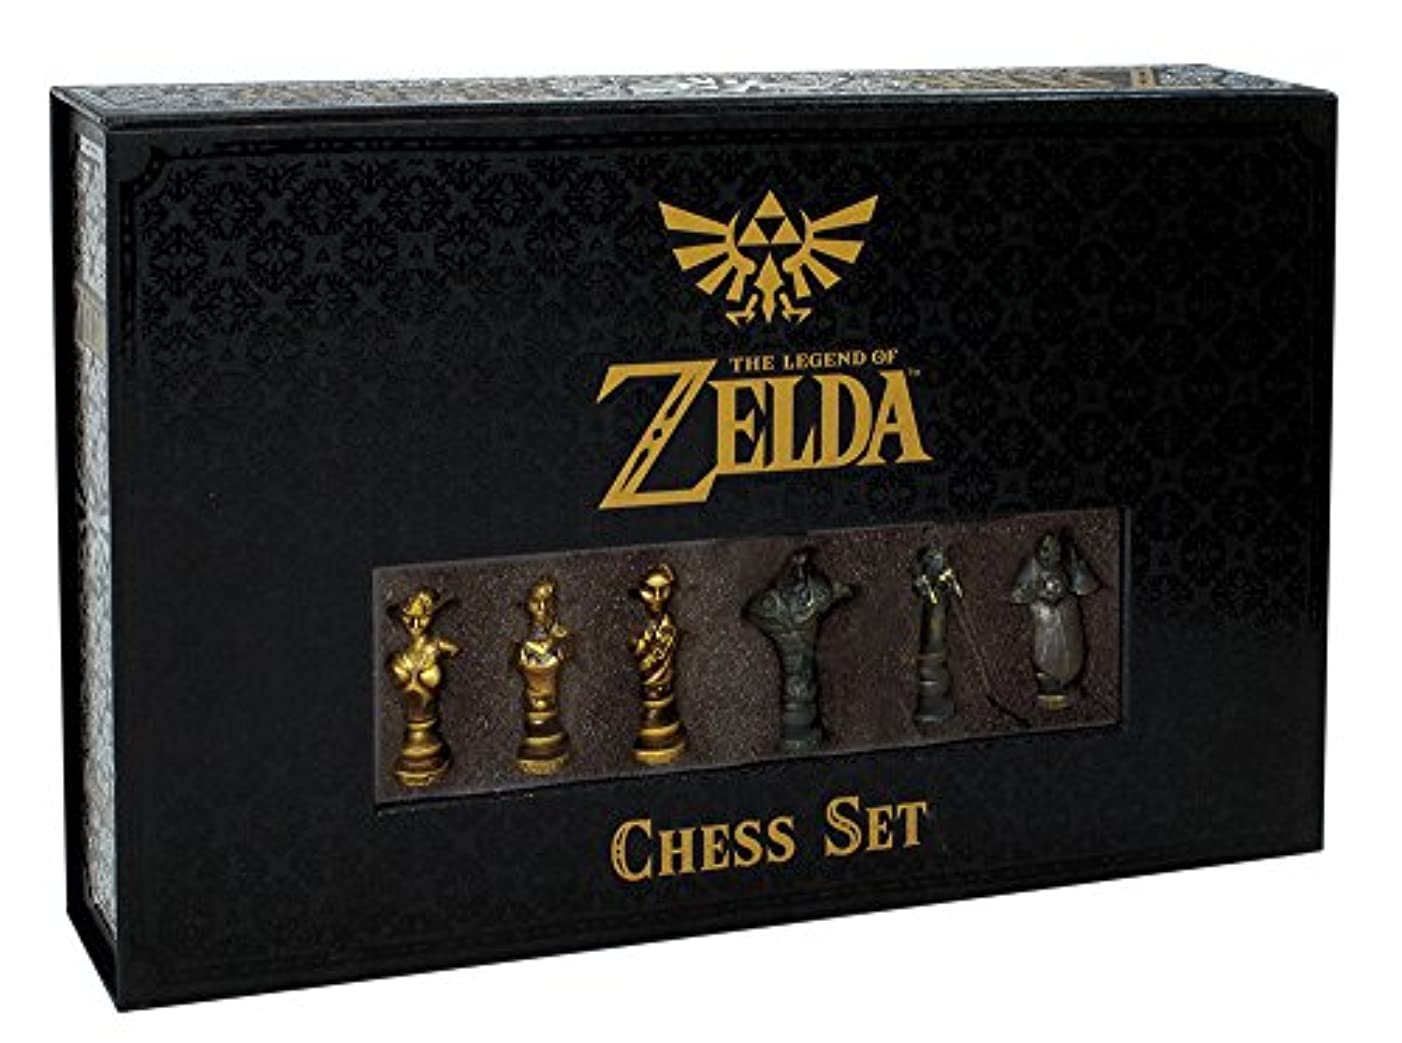 USAOPOLY The Legend of Zelda Chess Set   32 Custom Sculpt Chesspiece   Link vs. Ganon   Themed Chess Game from The Nintendo Zelda Video Games